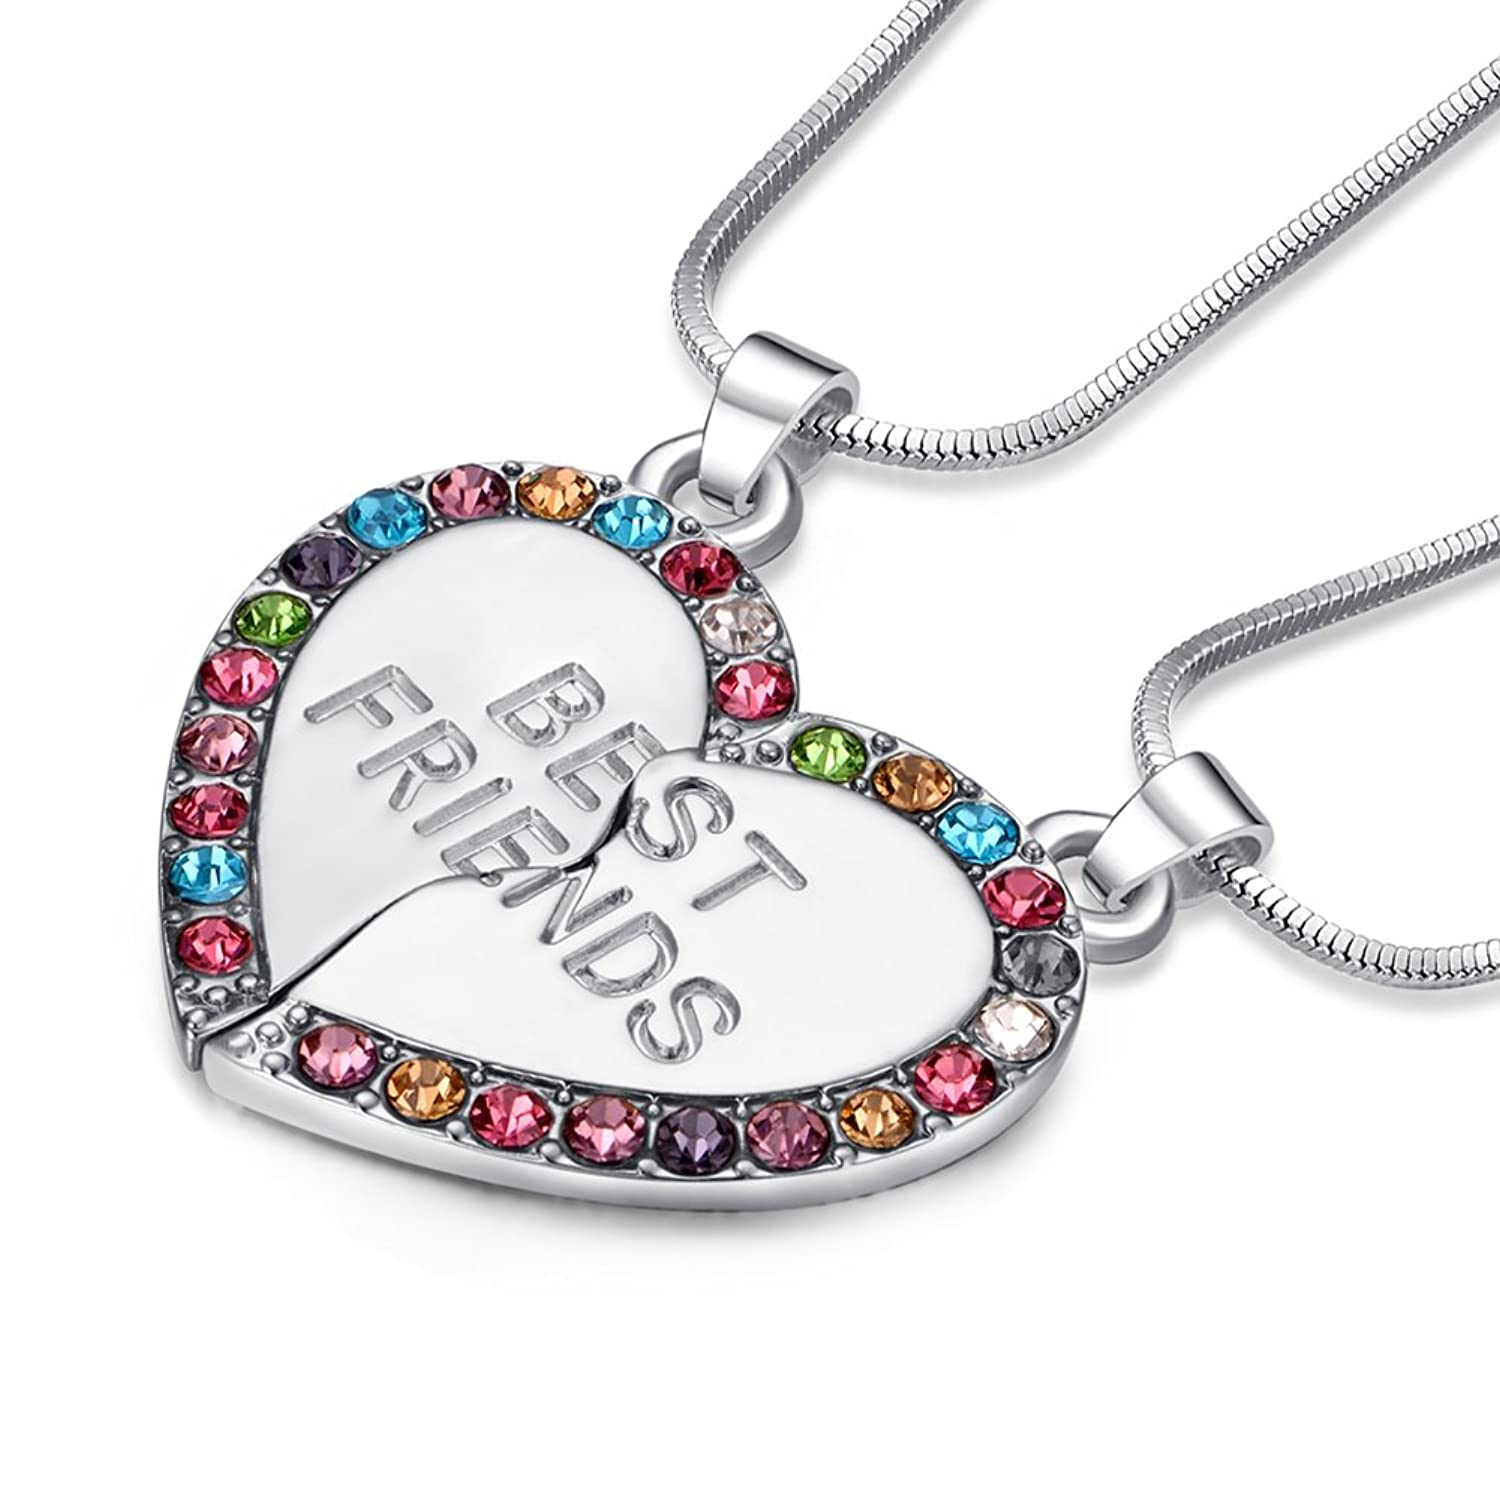 designs p locket product love message lockets custom necklace friendship personalized